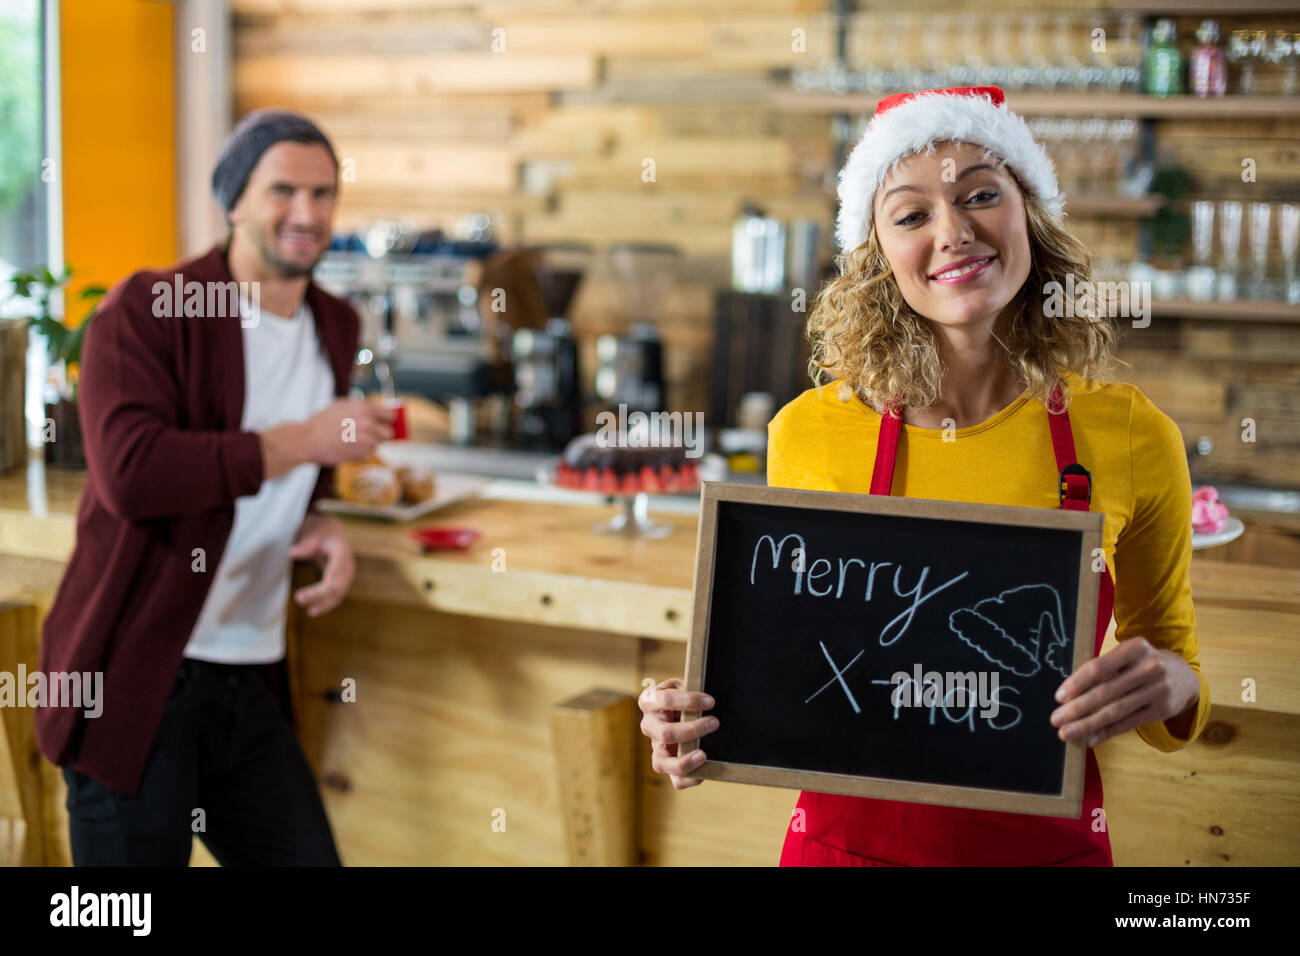 Portrait of smiling waitress standing with merry x mas sign board in cafe - Stock Image